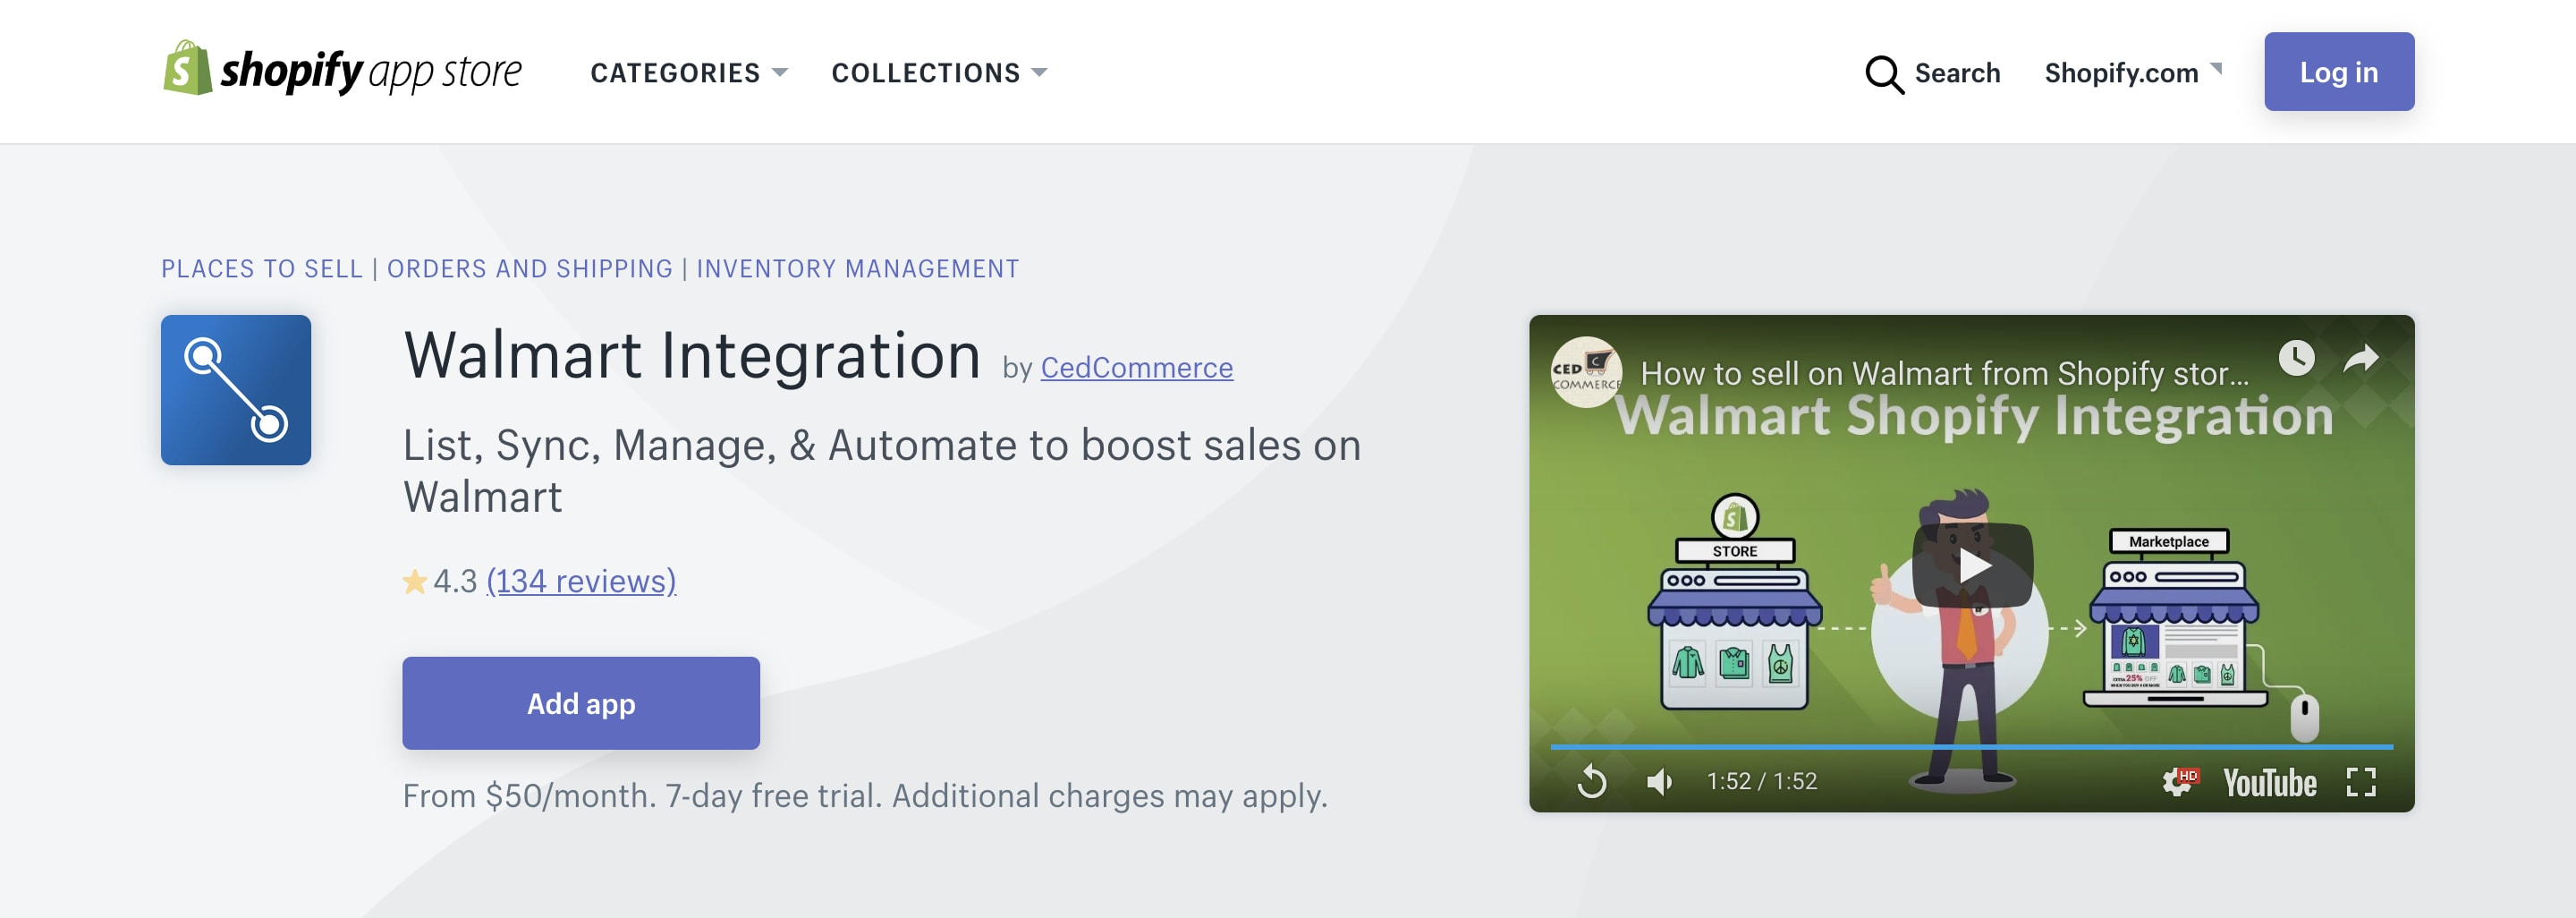 Shopify Walmart channel.